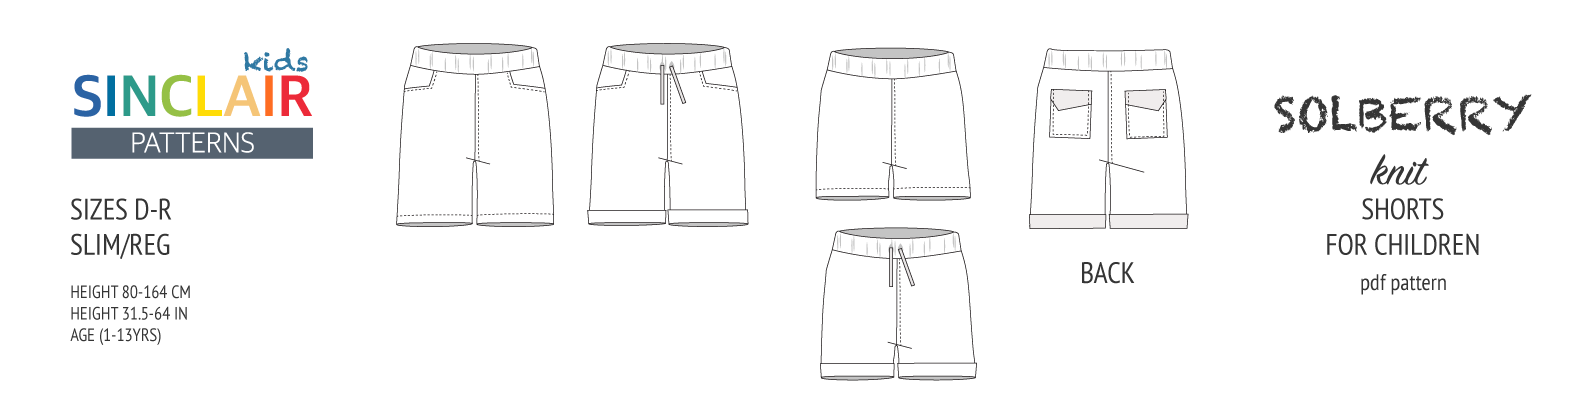 Solberry knit jersey shorts for children pdf sewing pattern